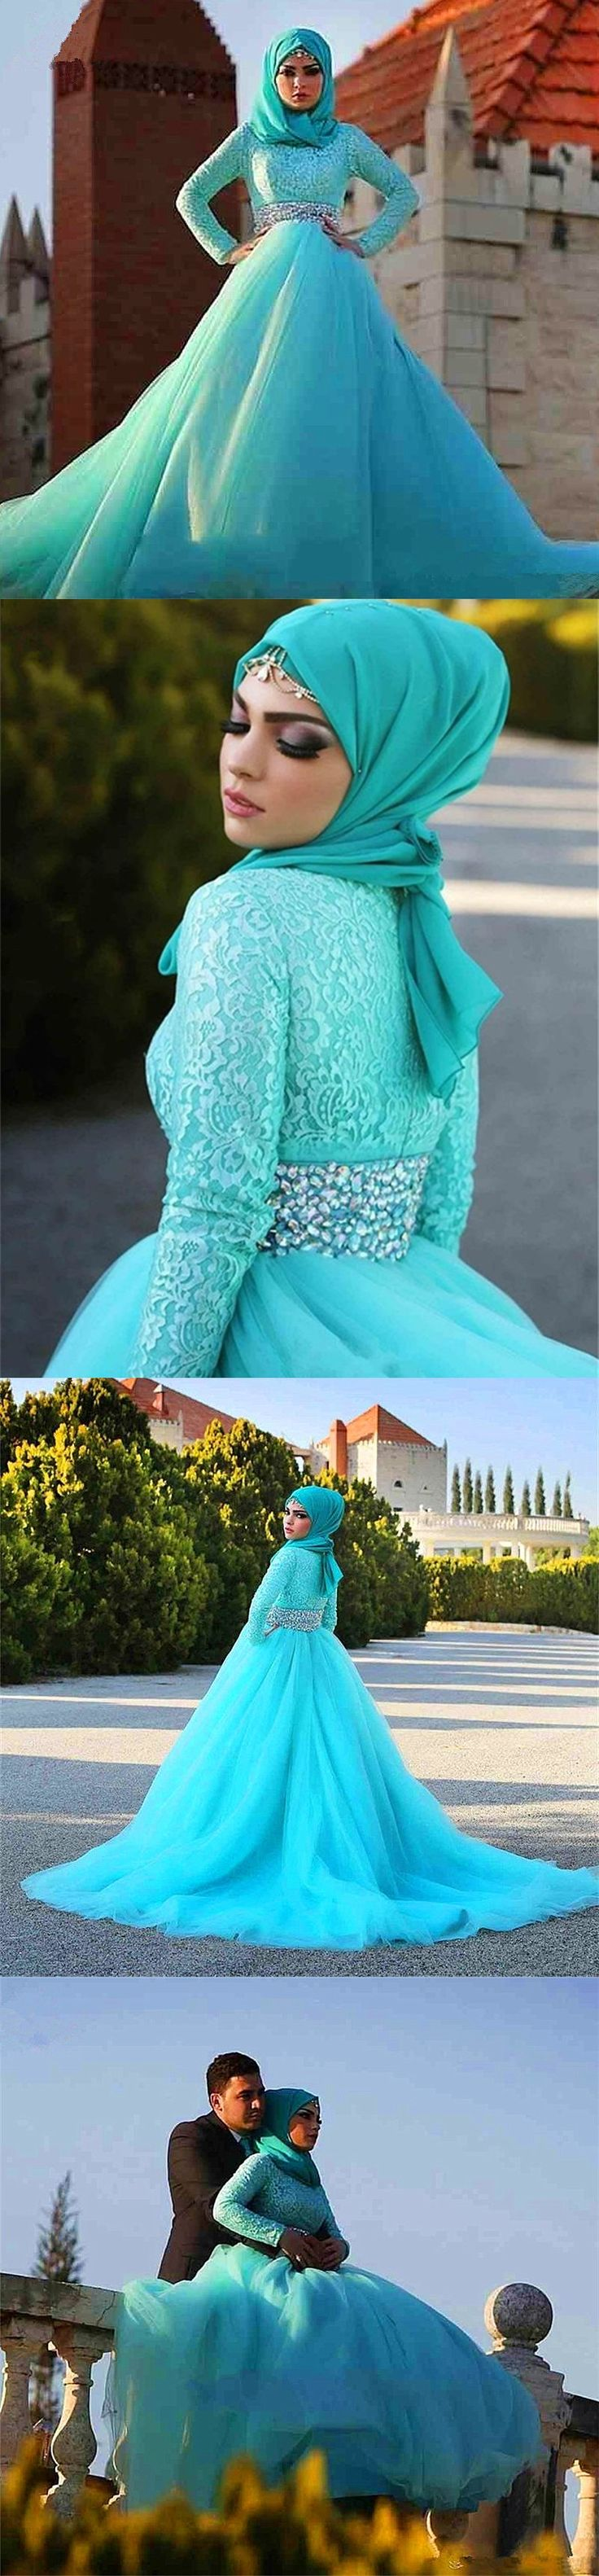 long sleeve Saudi Arabia muslim wedding dress 2016 Islamic ball gown high neck Vestido De Noiva Wedding gown With Hijab Veil $234